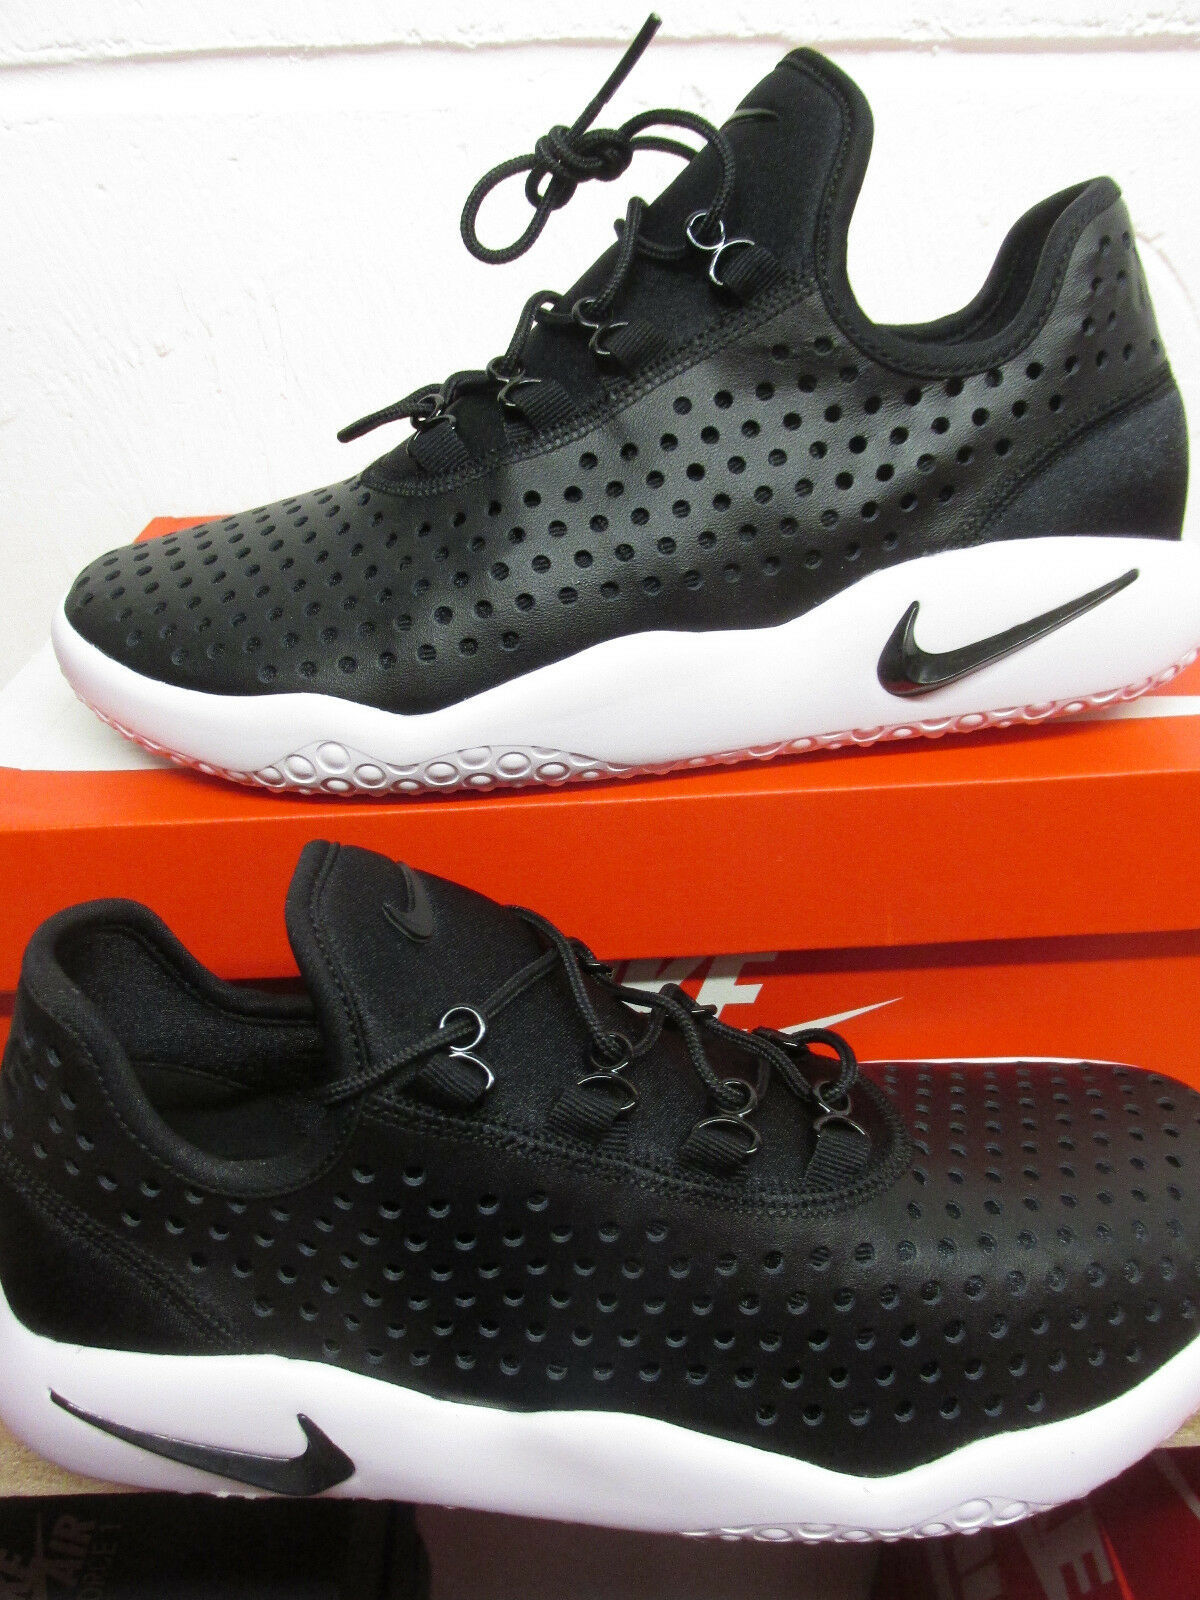 Nike FL-RUE Mens Running Trainers 880994 001 Sneakers shoes